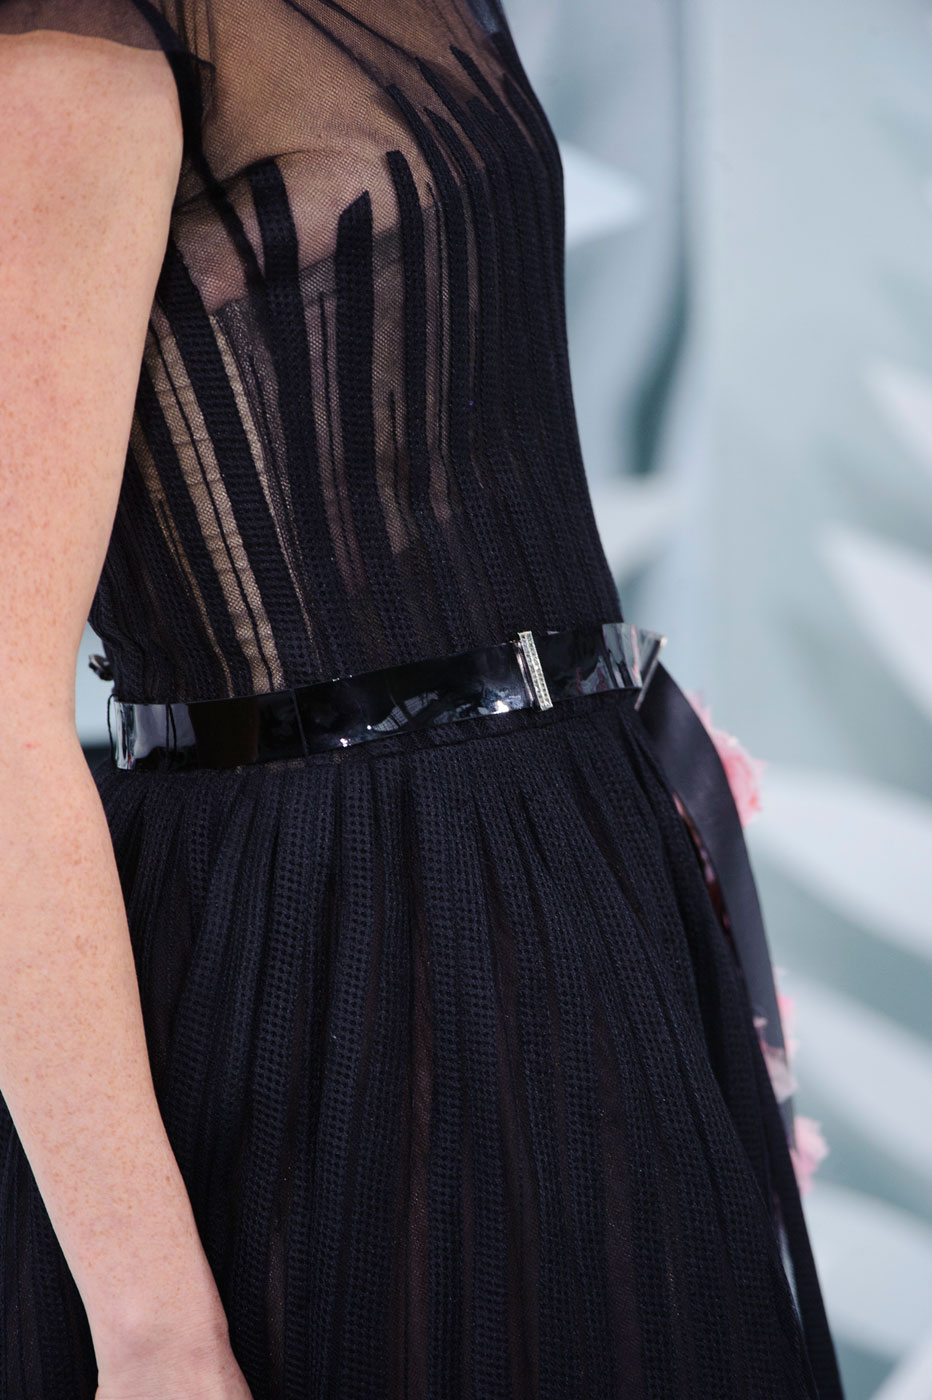 Chanel-fashion-runway-show-close-ups-haute-couture-paris-spring-summer-2015-the-impression-068